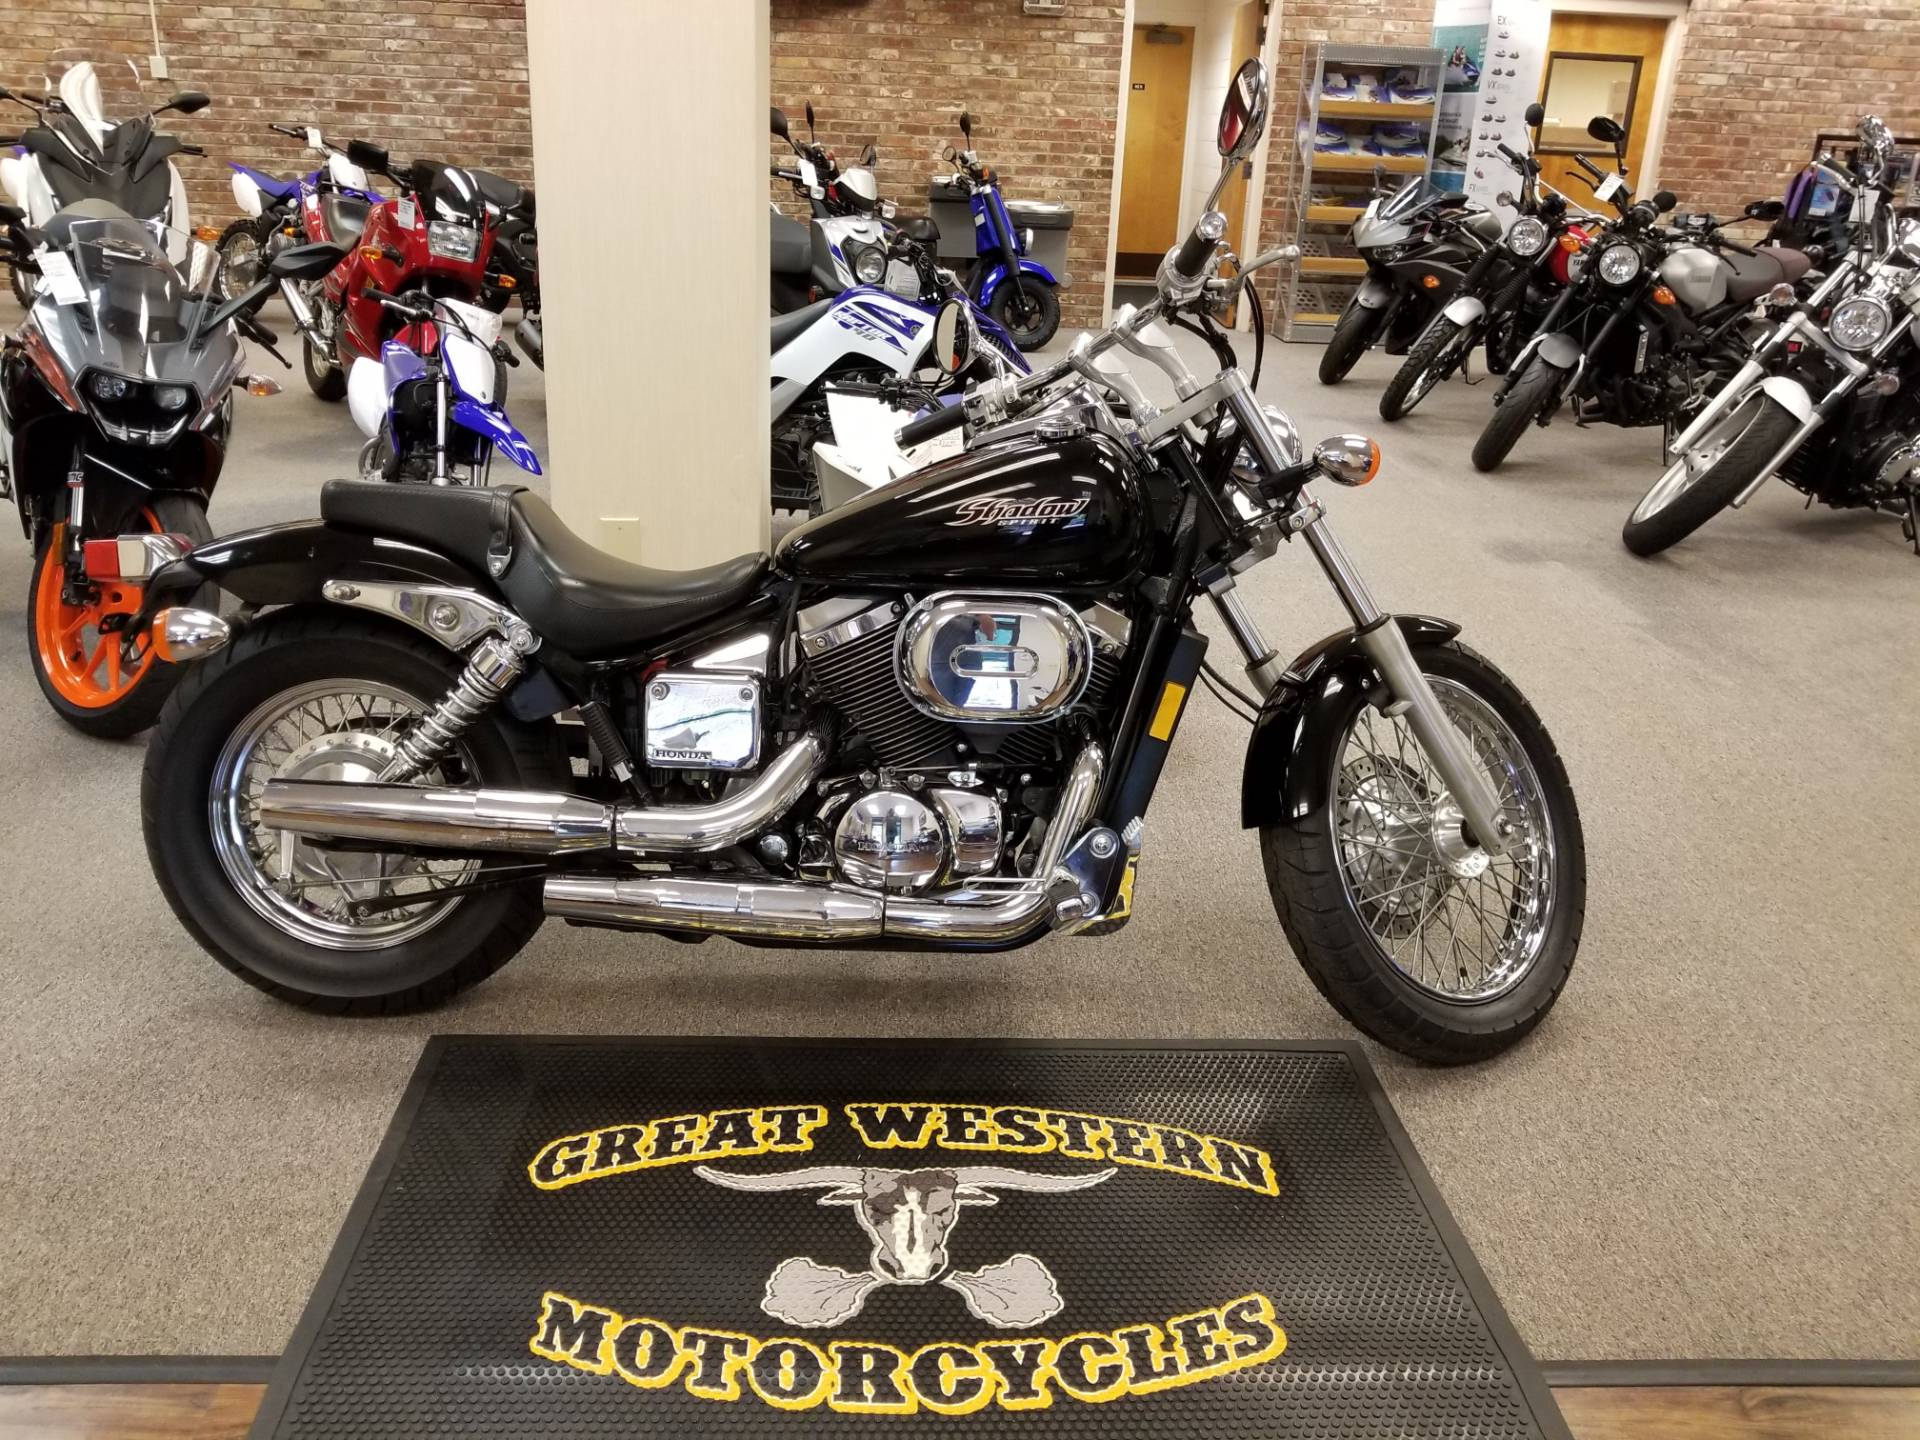 Used 2005 Honda Shadow Spirit 750 Motorcycles In Statesville Nc Fuel Filter North Carolina